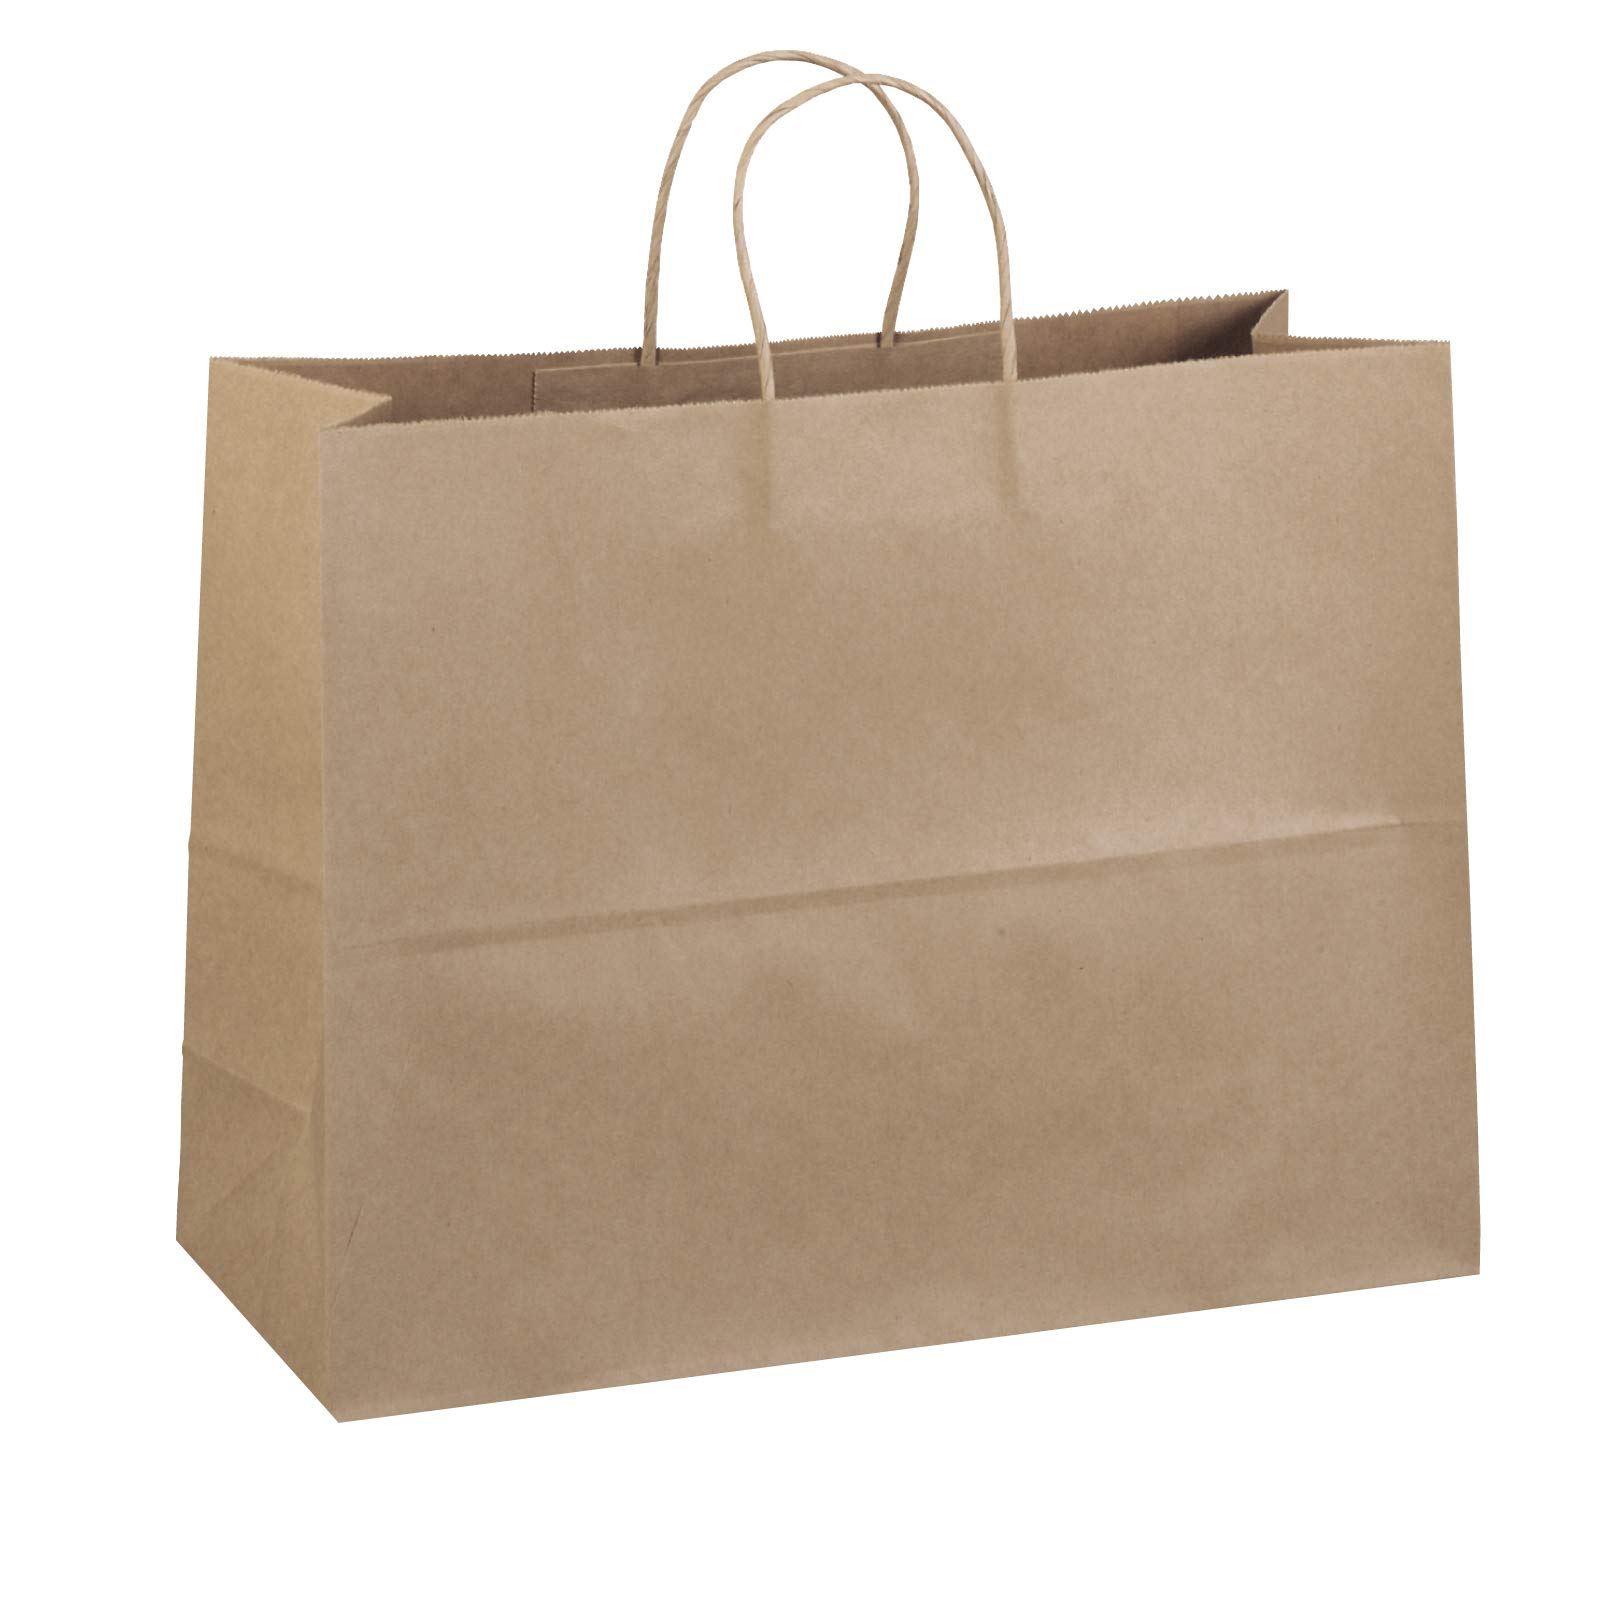 50 Paper Retail/Shopping Bags KRAFT with Rope Handles 16x6x12 TOTE